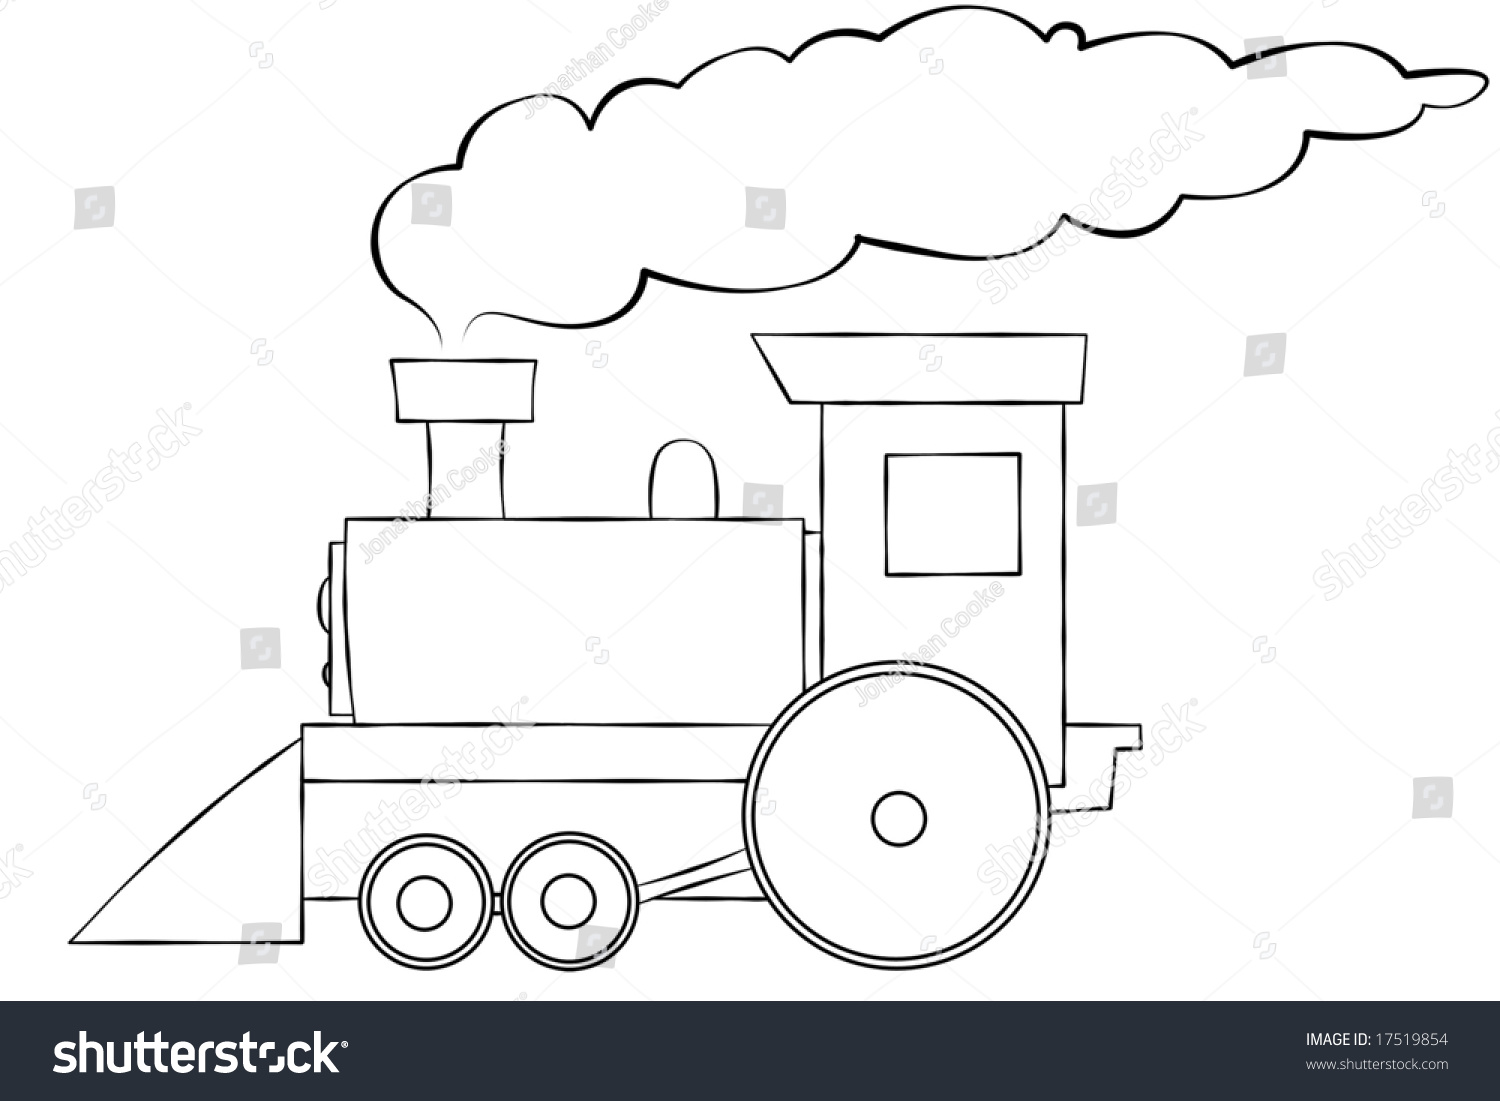 Line Art Text : Line art illustration choo train stock